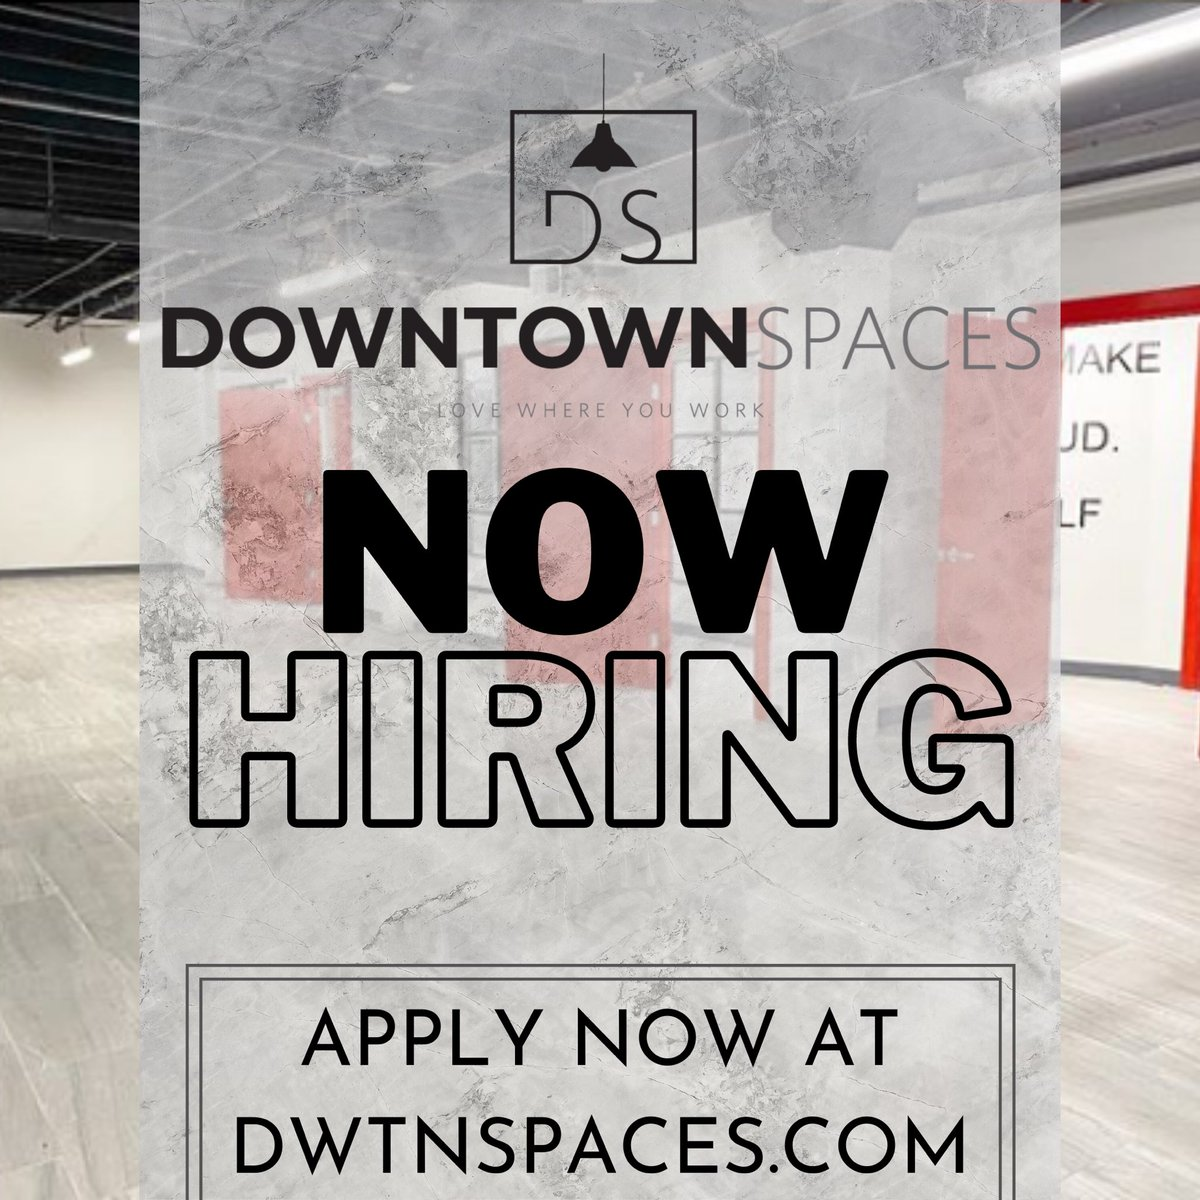 Come join an inspirational, motivational, and growing co-working space. ⠀ ⠀ We are now hiring! ⠀ ⠀ Hourly rates, plus commission, and you also get a free shared space when you work with us. ⠀ ⠀ #elpaso #915 #lascruces #work ⠀  ⠀